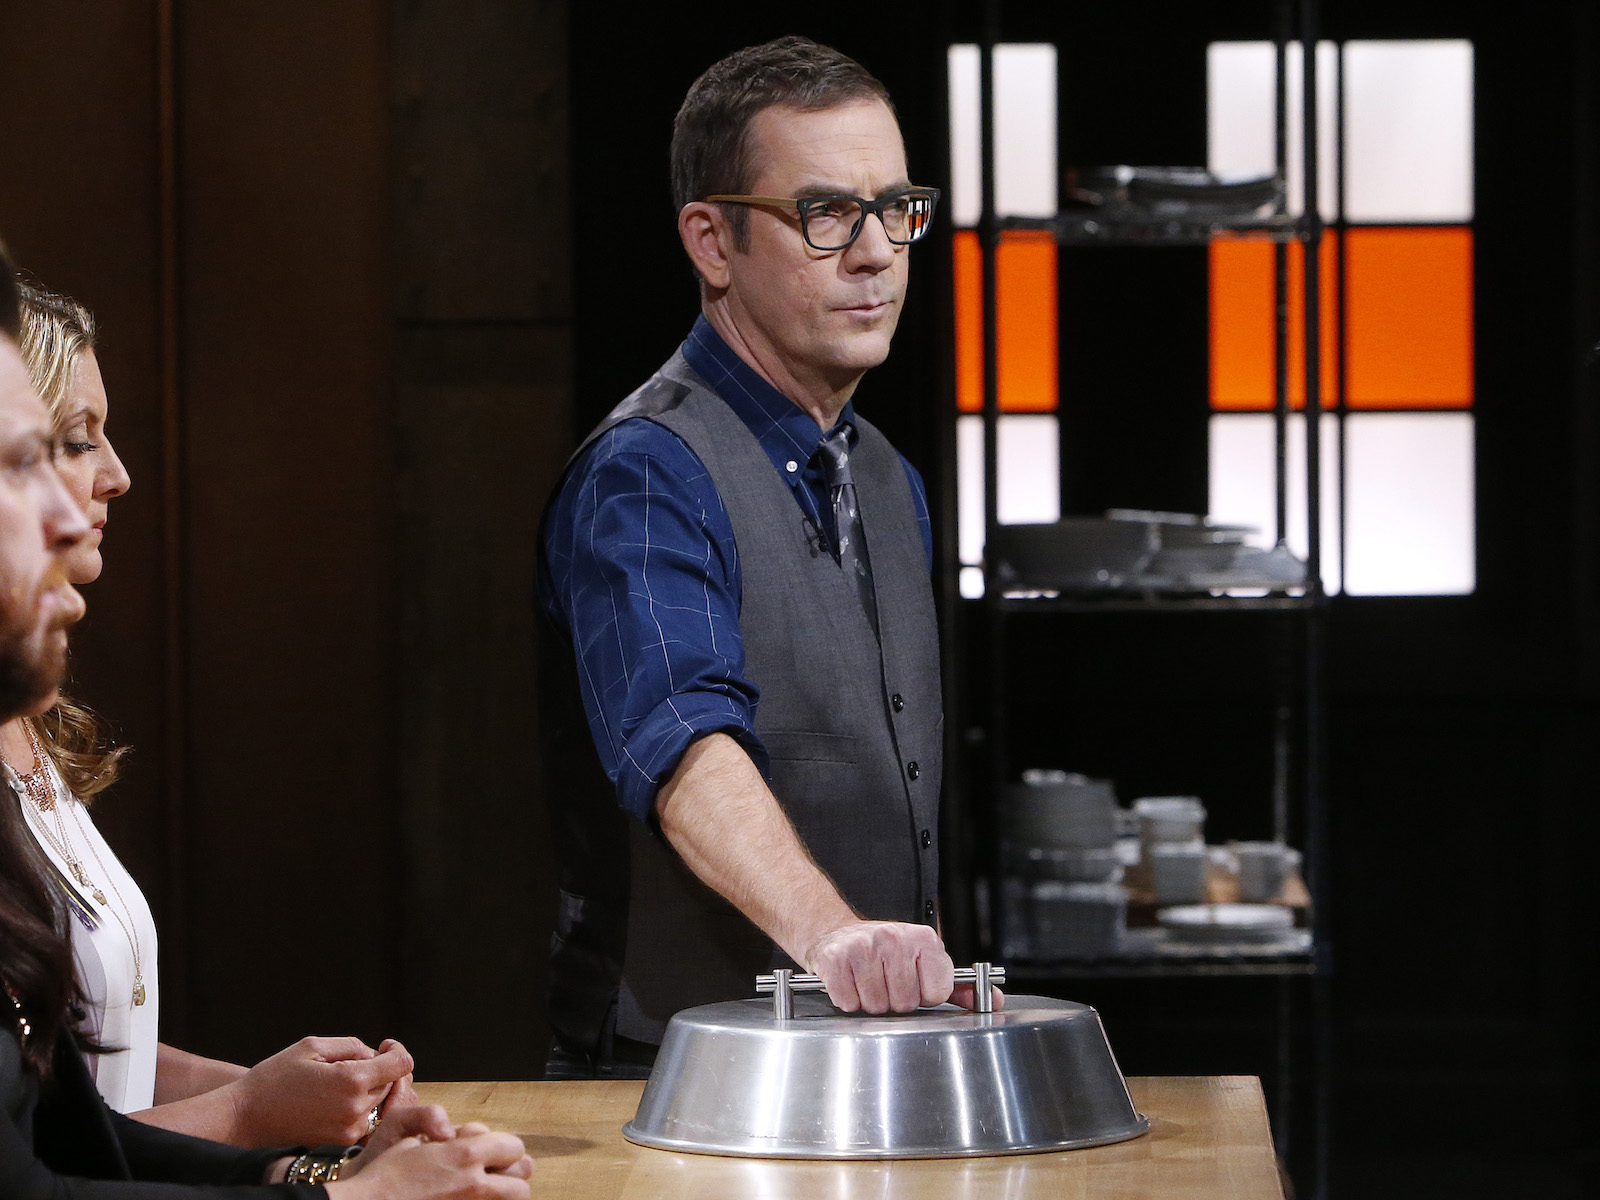 Ted Allen Says Each 'Chopped' Basket Is Actually a 'Riddle' Waiting to Be Solved